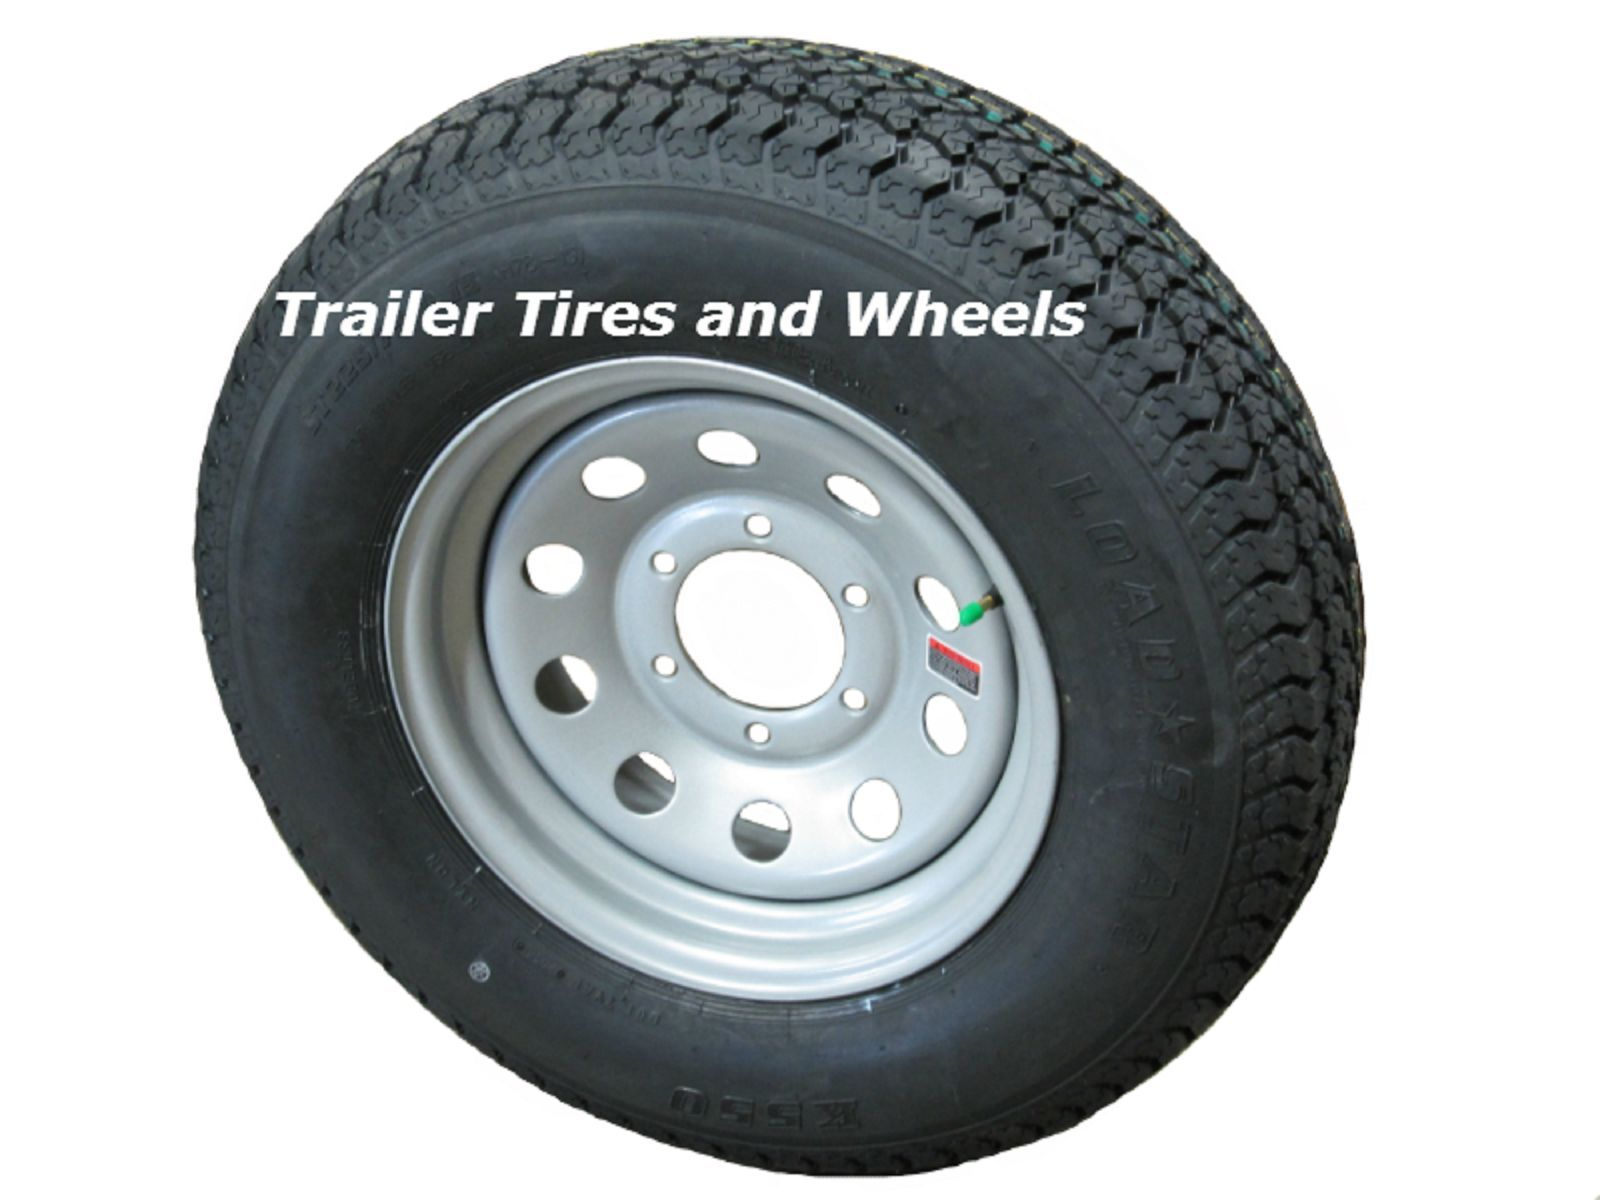 Top Rated Travel Trailer Tires